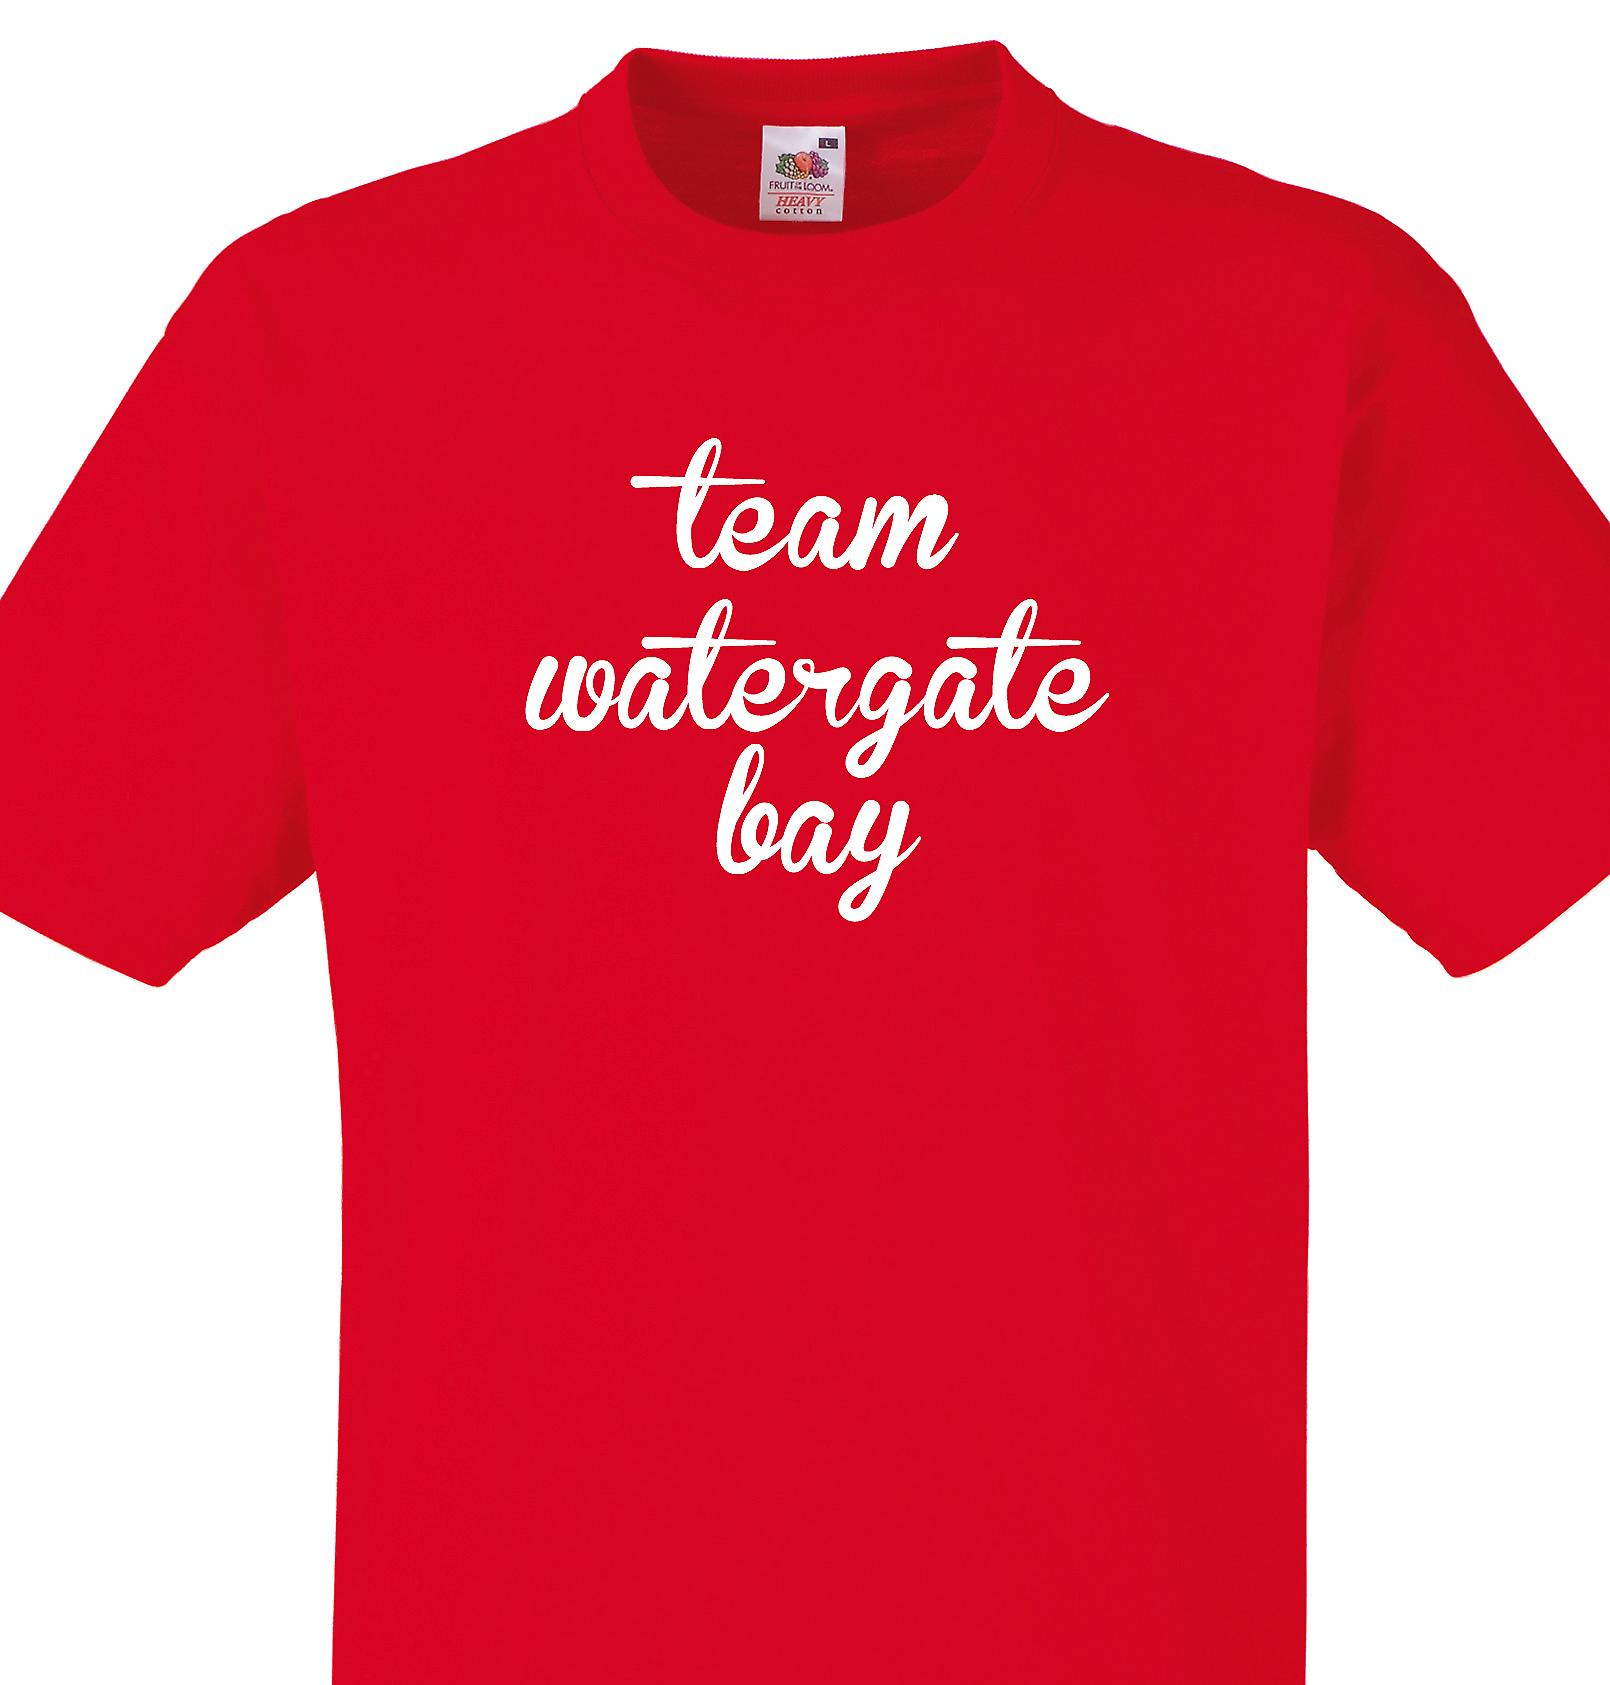 Team Watergate bay Red T shirt